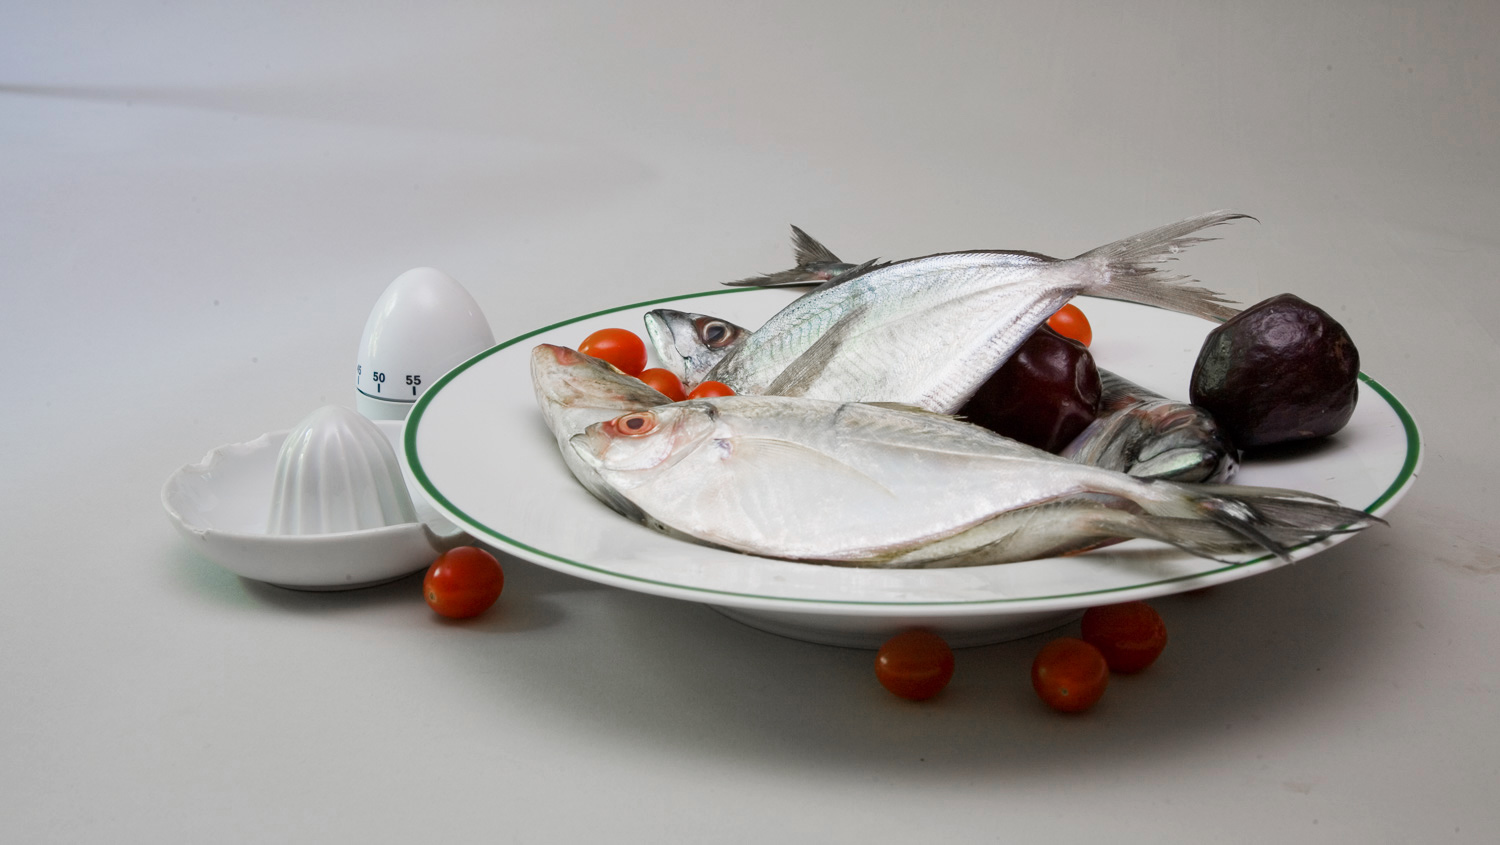 Although it is very hot today my Butterfish,Mackerel and the Blue Runner appear to be fresh and wholesome.